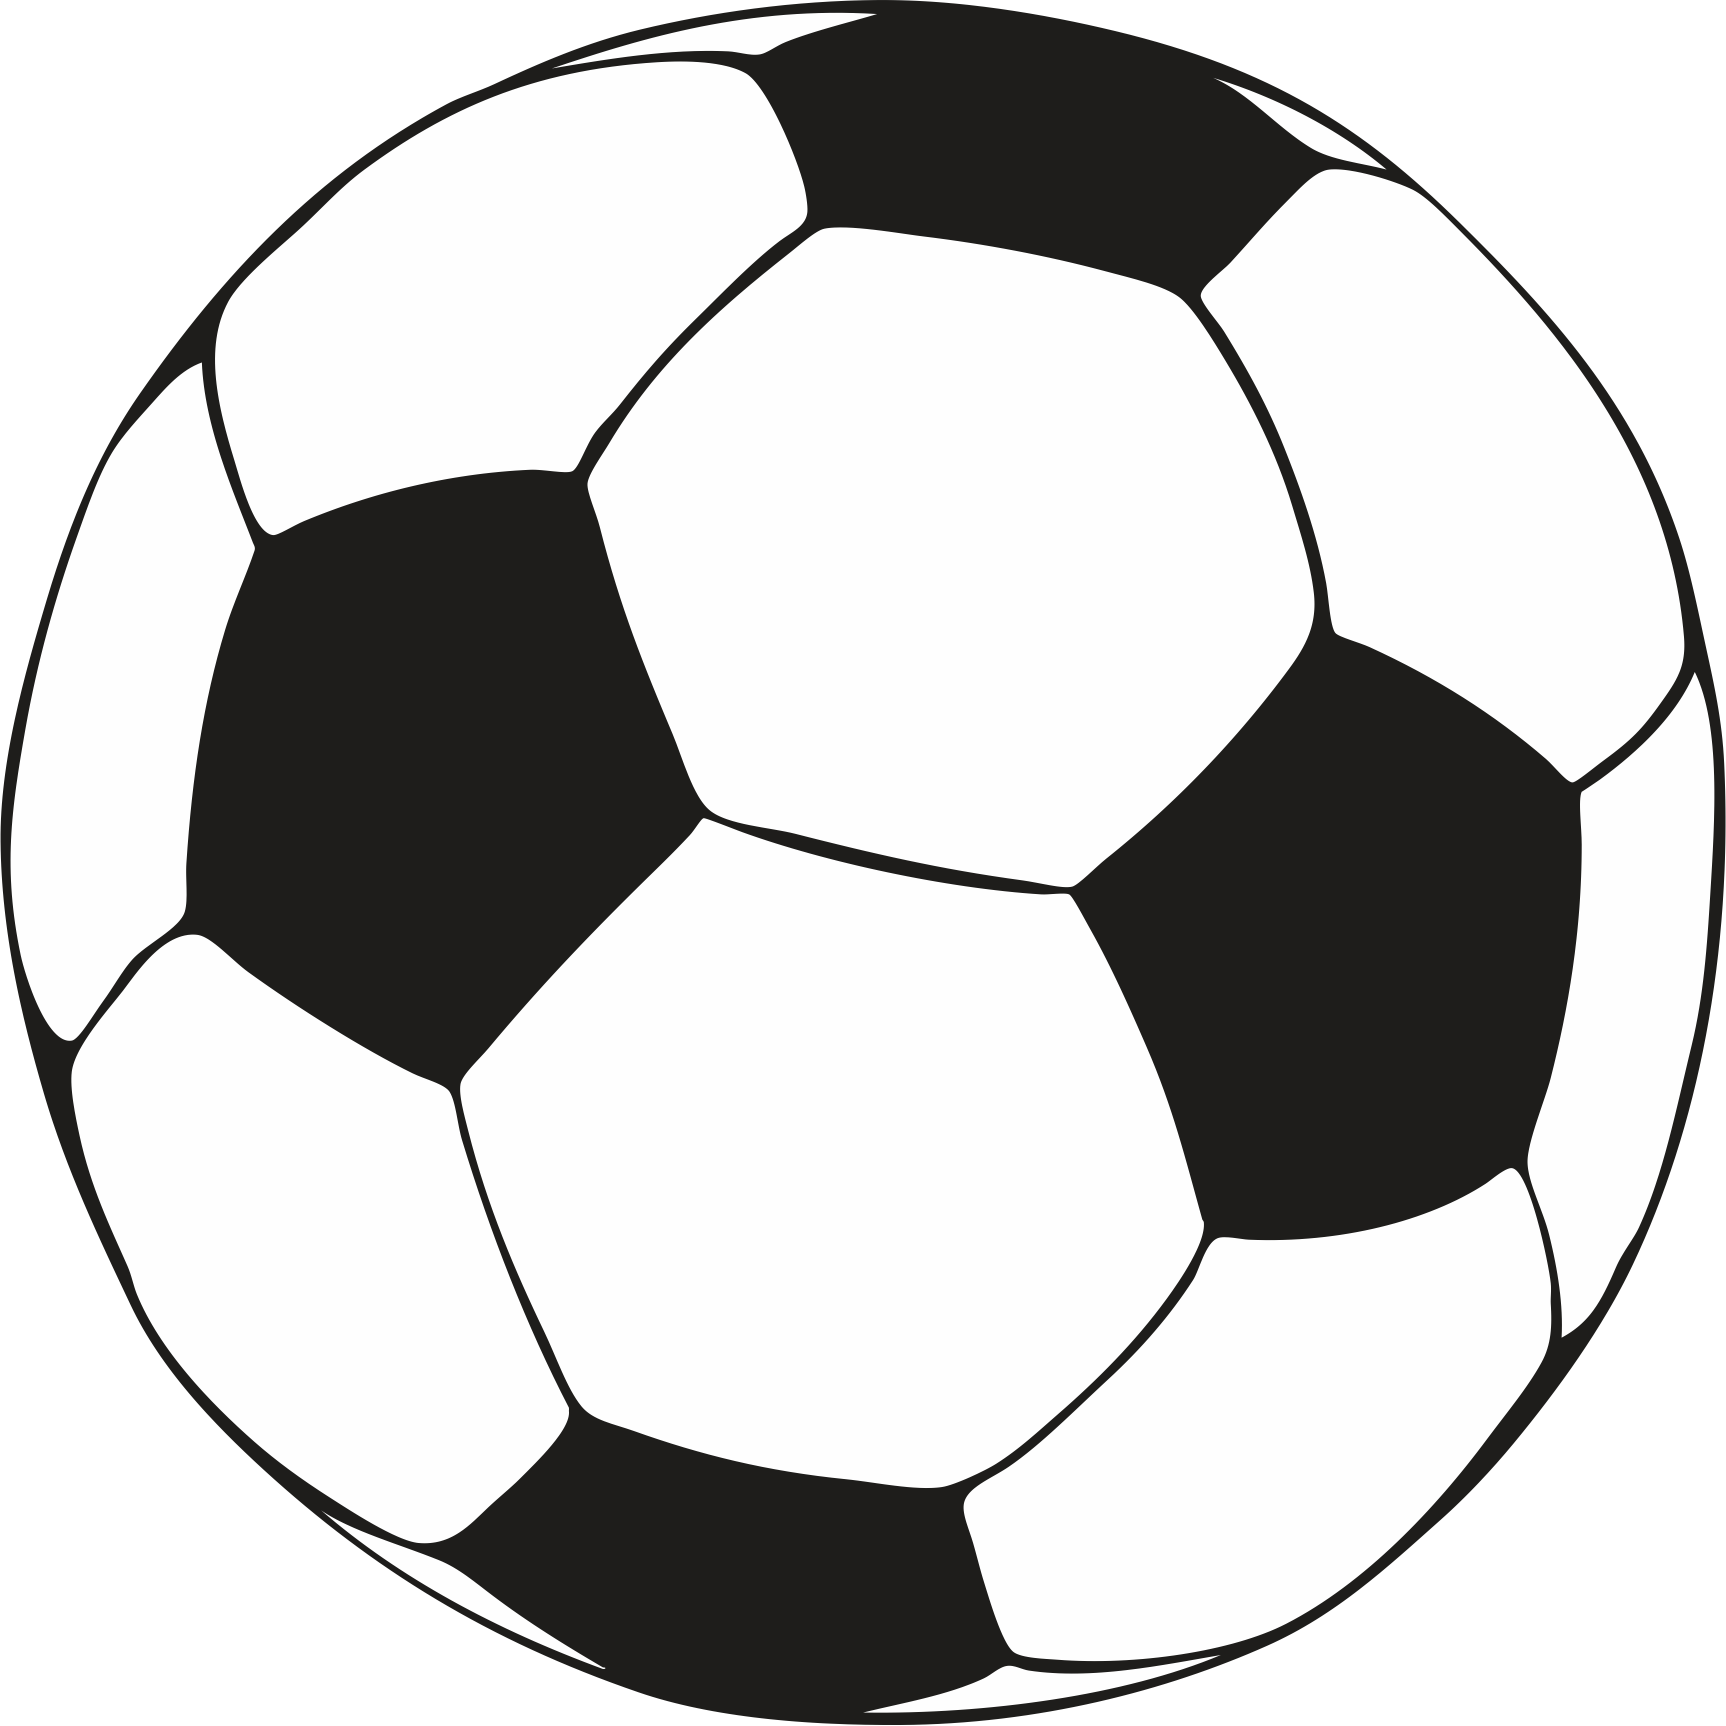 Soccerball drawing outline. Soccer ball coloring sheets